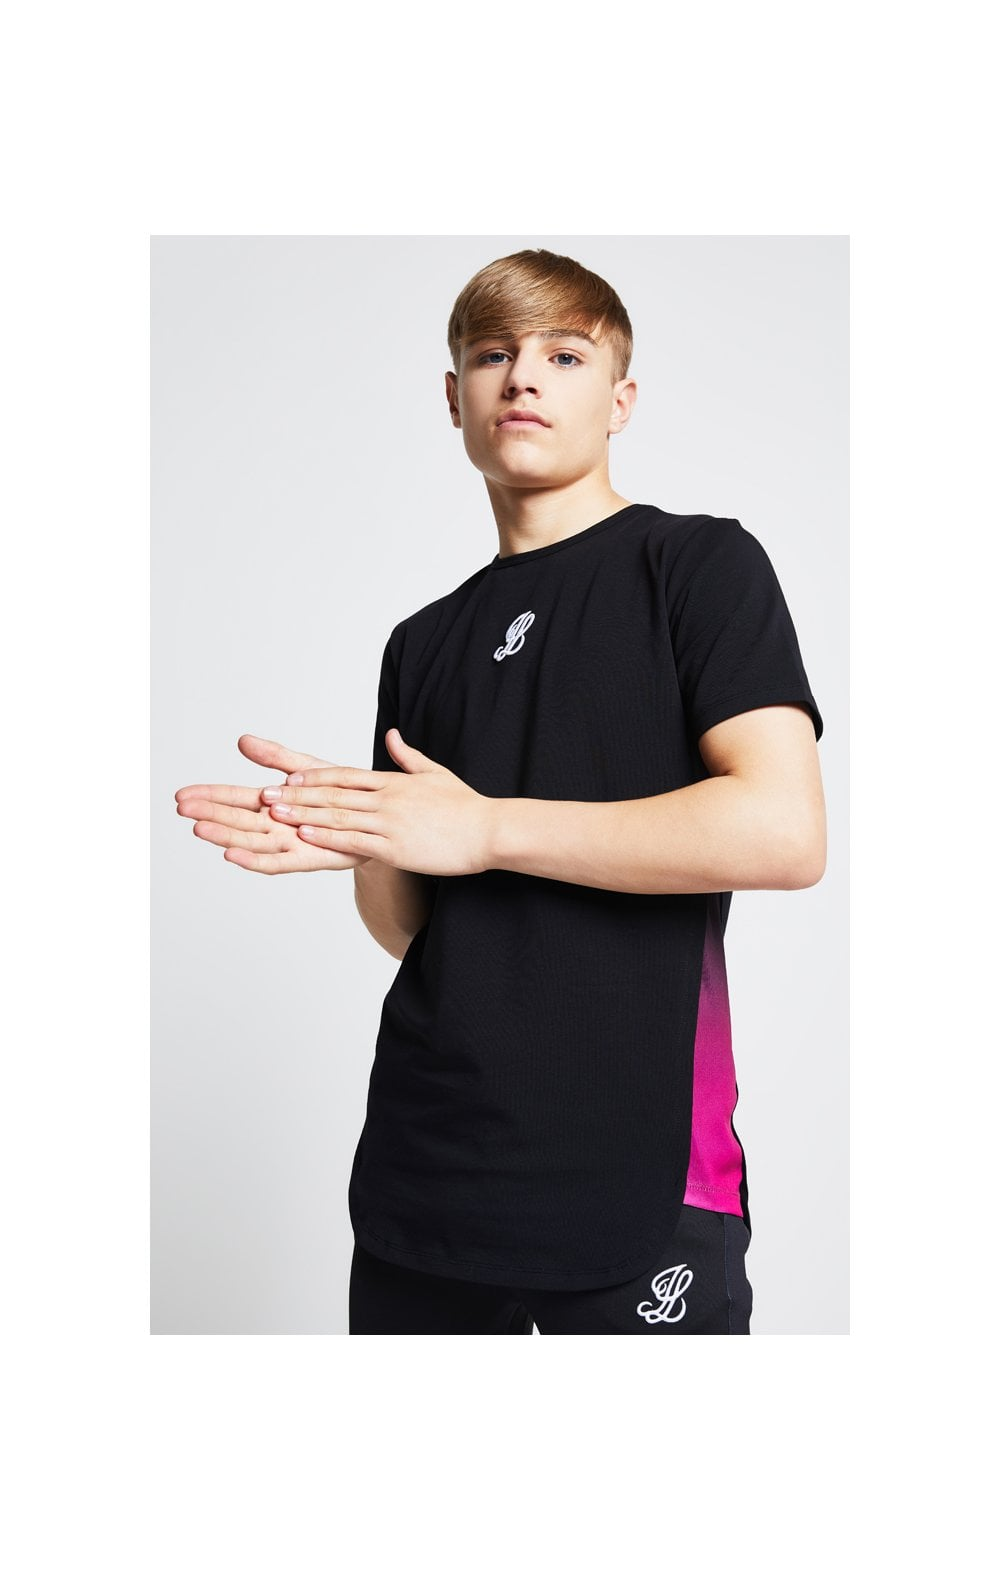 Illusive London Slide Tee - Black & Pink